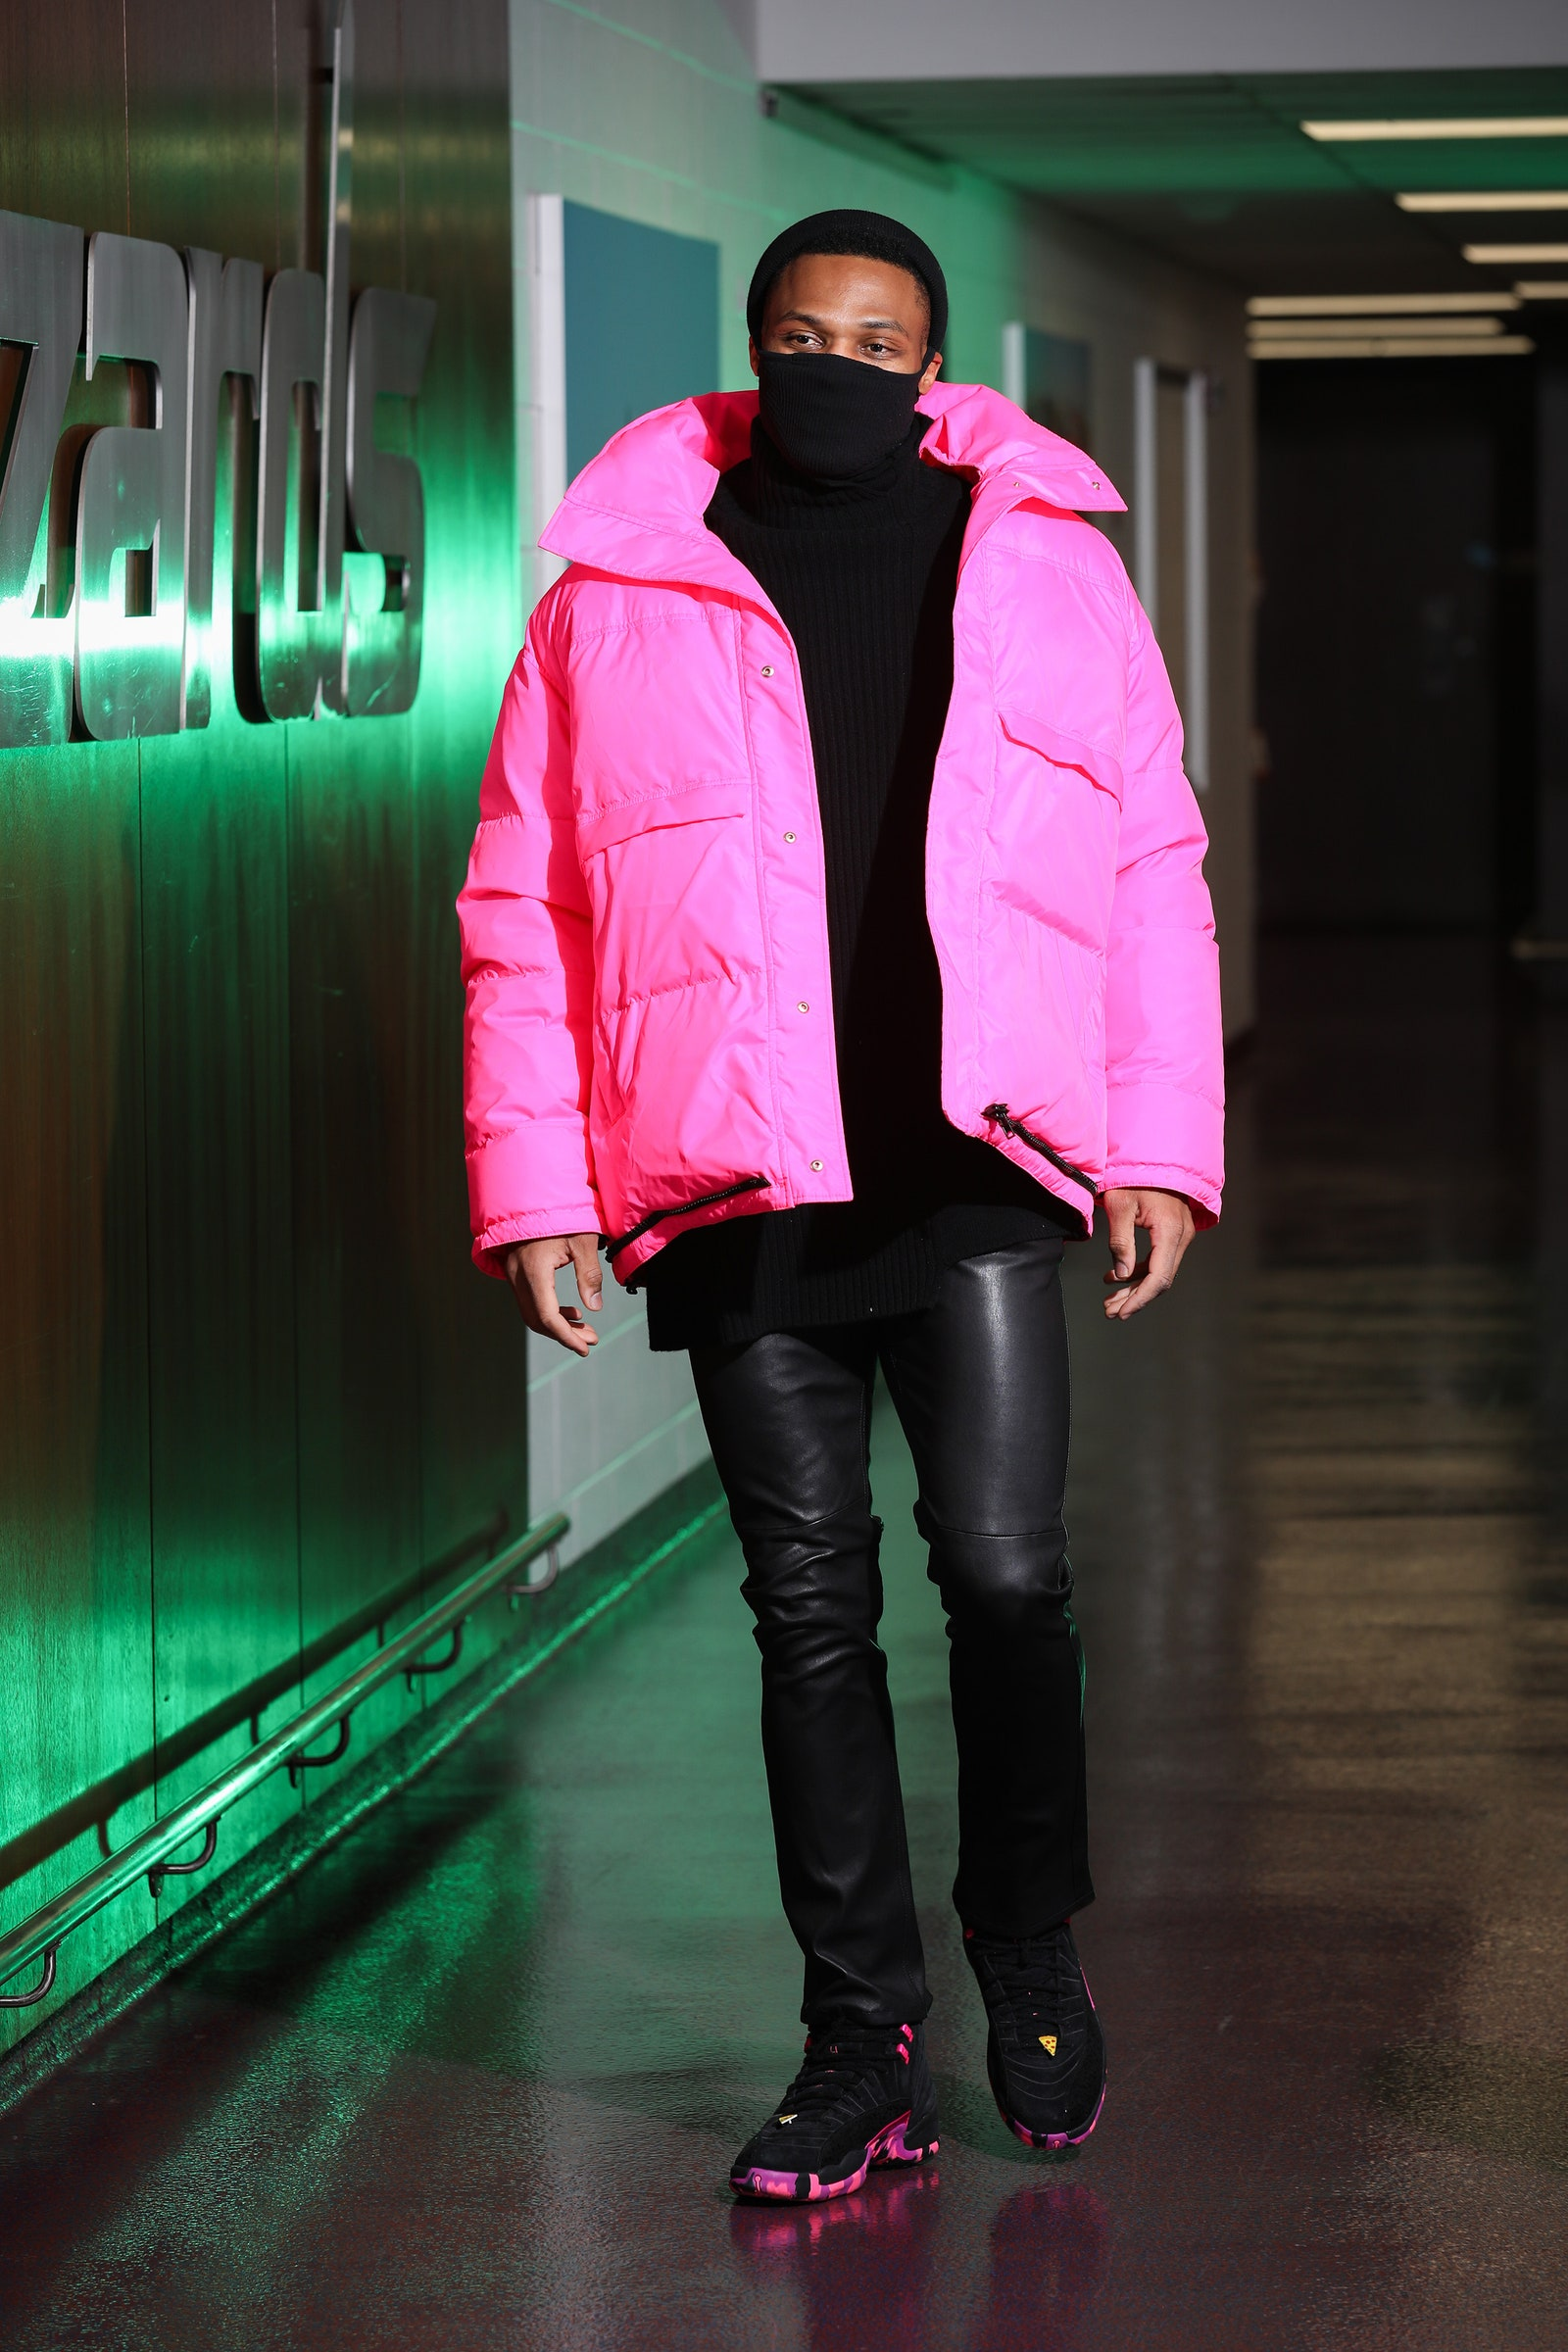 Russell Westbrook arrives for a game in Washington D.C. February 12 2021.